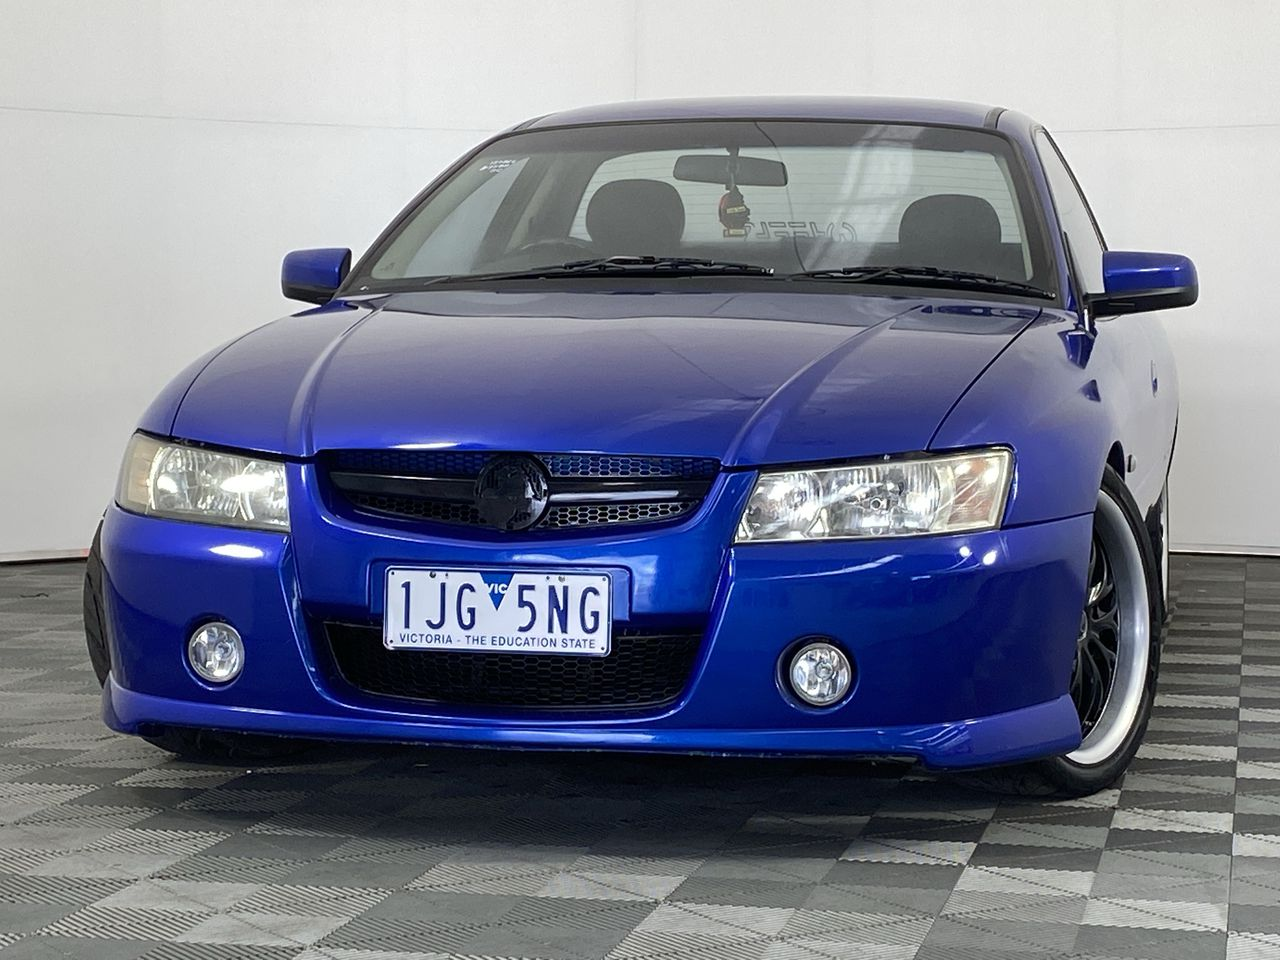 2005 Holden Commodore S VZ Automatic Ute (WOVR Inspected)